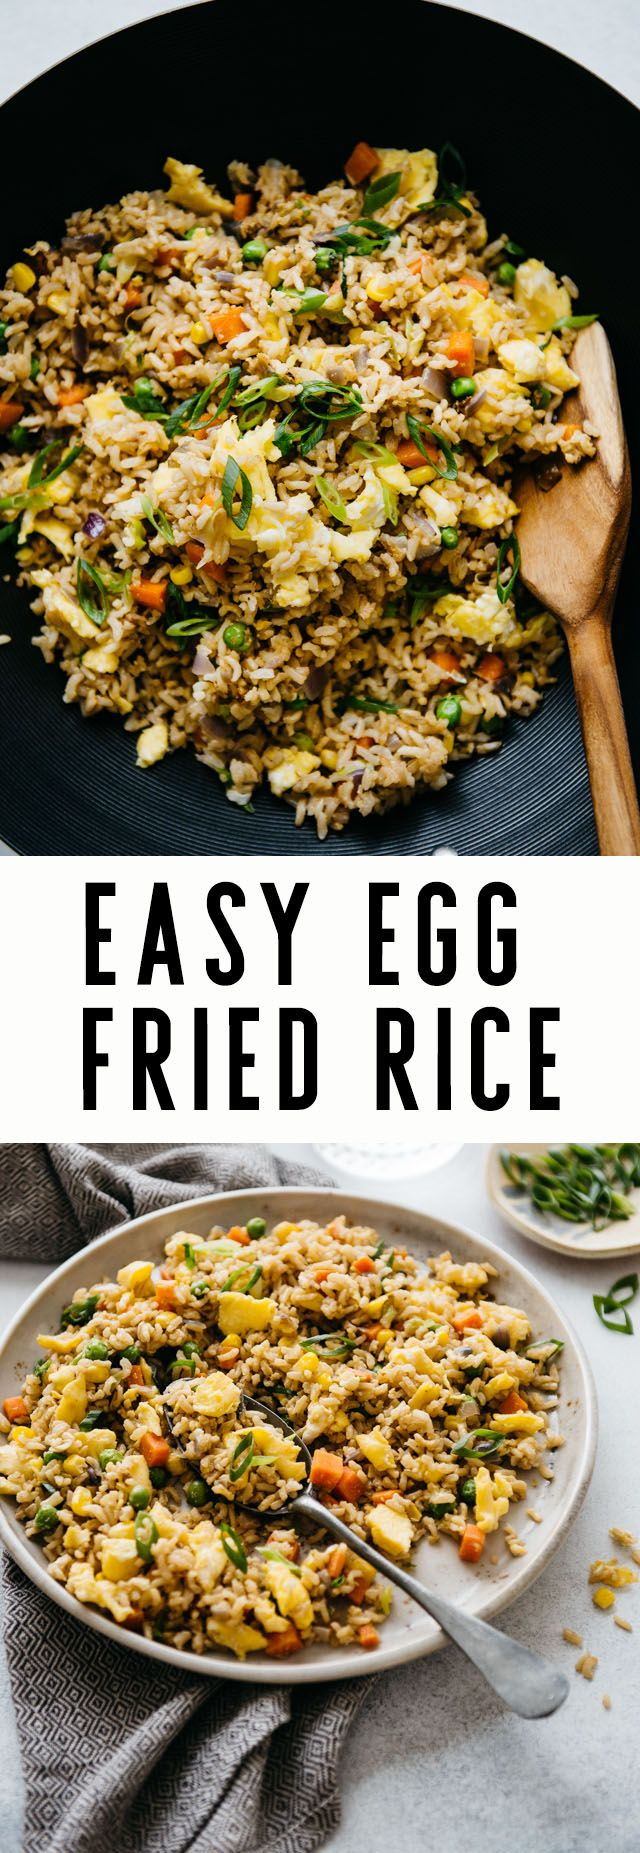 Easy Egg Fried Rice images